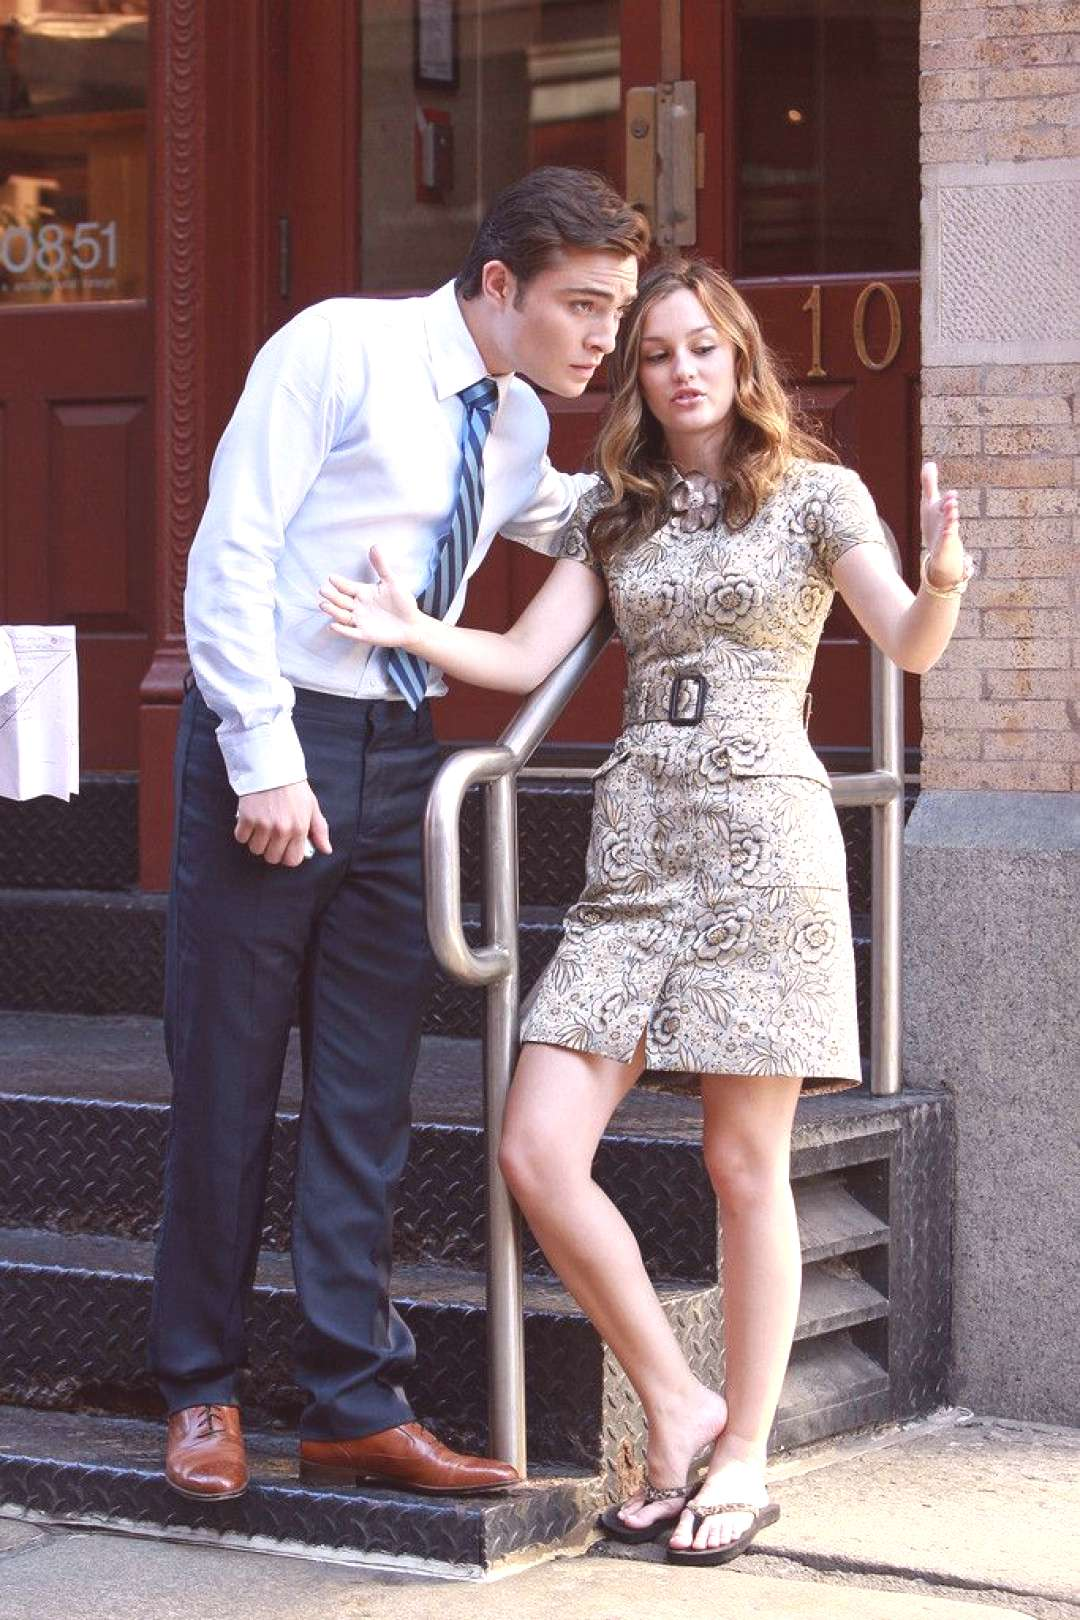 Leighton Meester Ed Westwick Photos: Leighton Meester and Ed Westwick film a scene in Soho